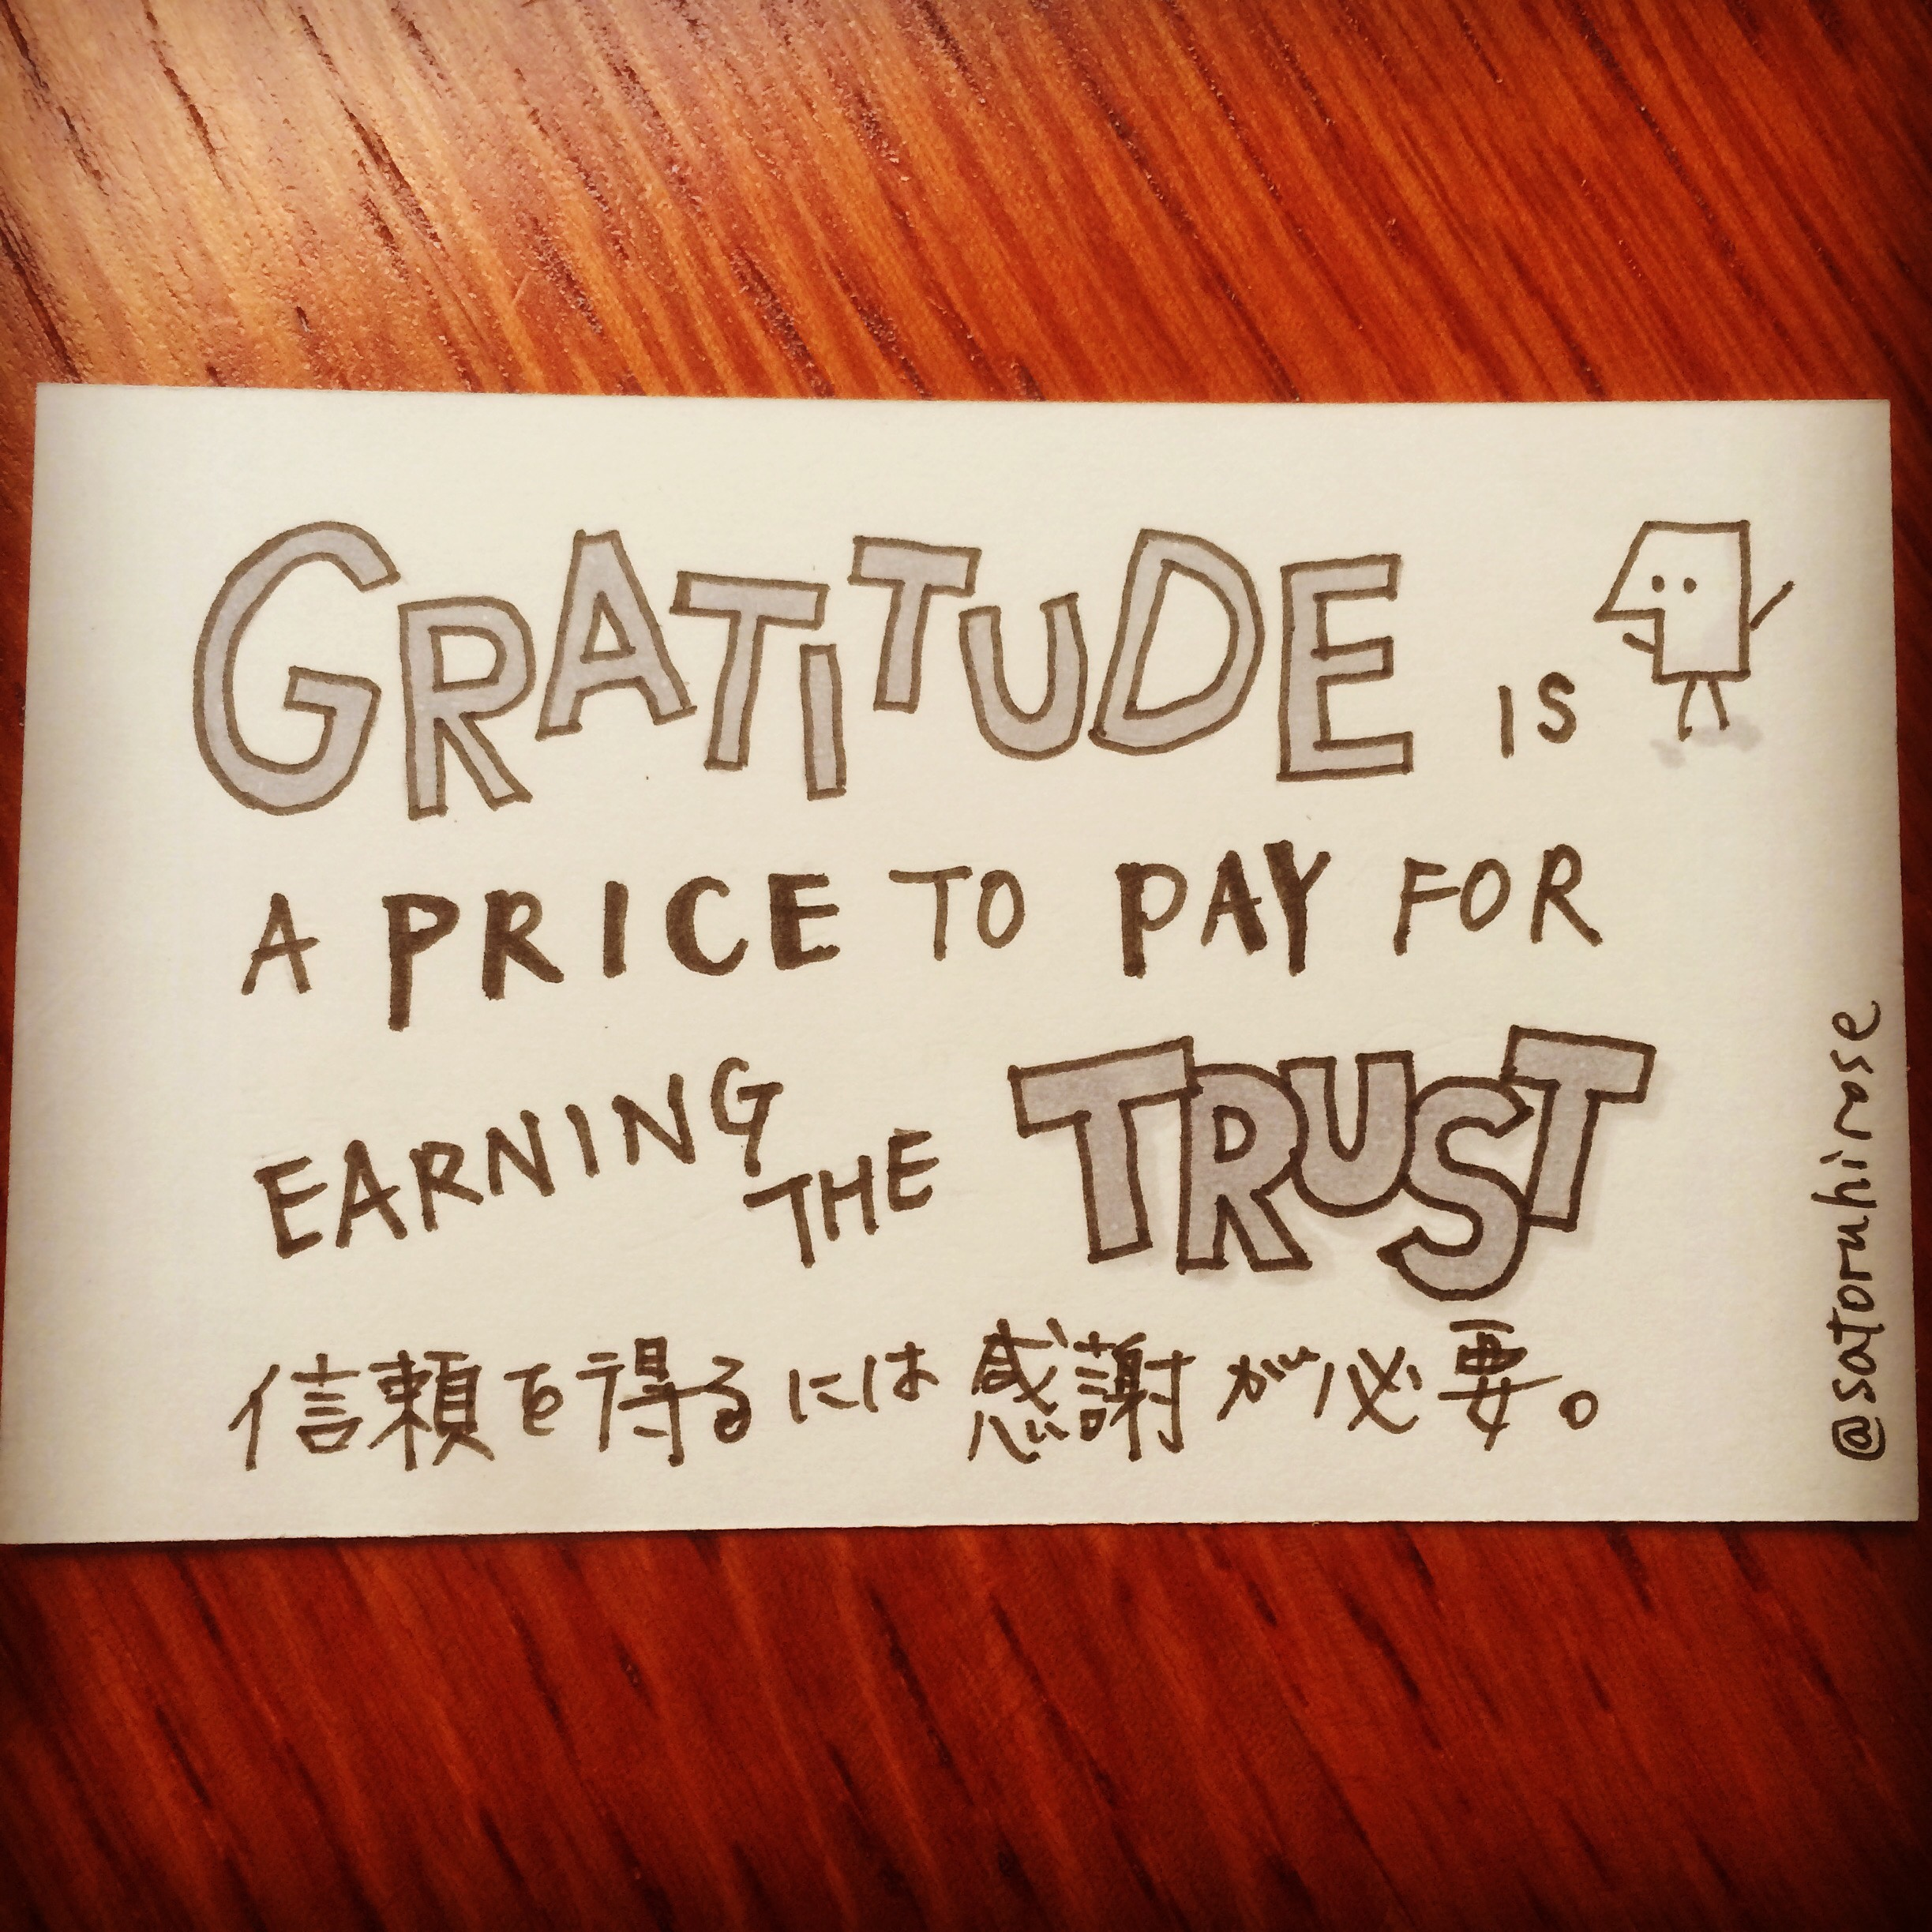 Gratitude is a price to pay for earning the trust.